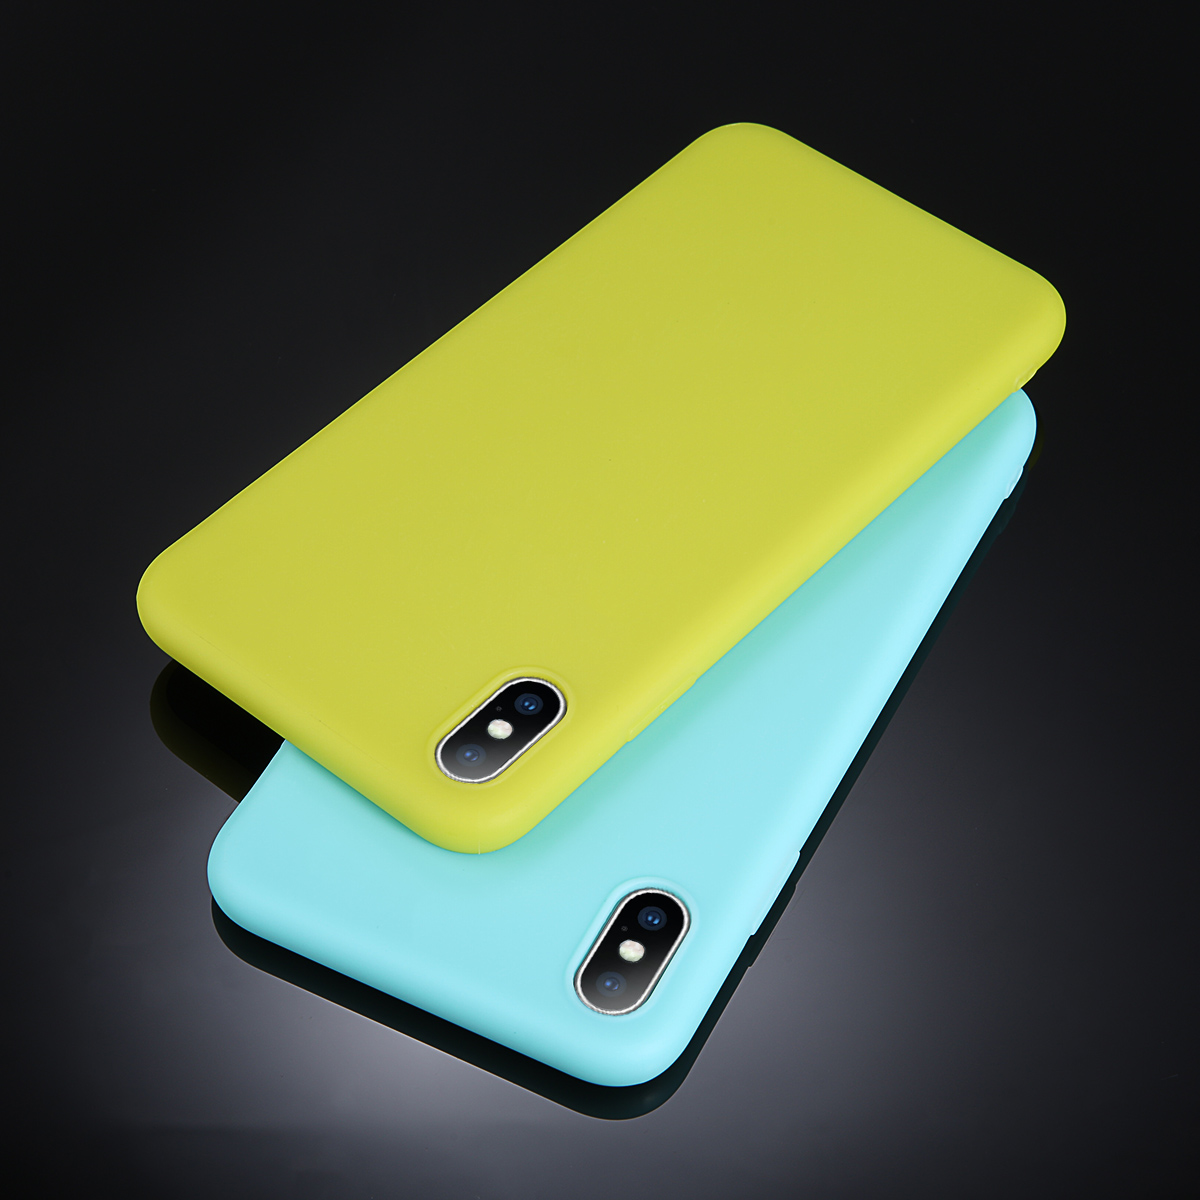 iPWSOO Candy Color Matte Phone Case For iPhone 7 8 Plus 6 6s For iPhone XS MAX X XR Simple Solid Soft TPU Cases Back Cover